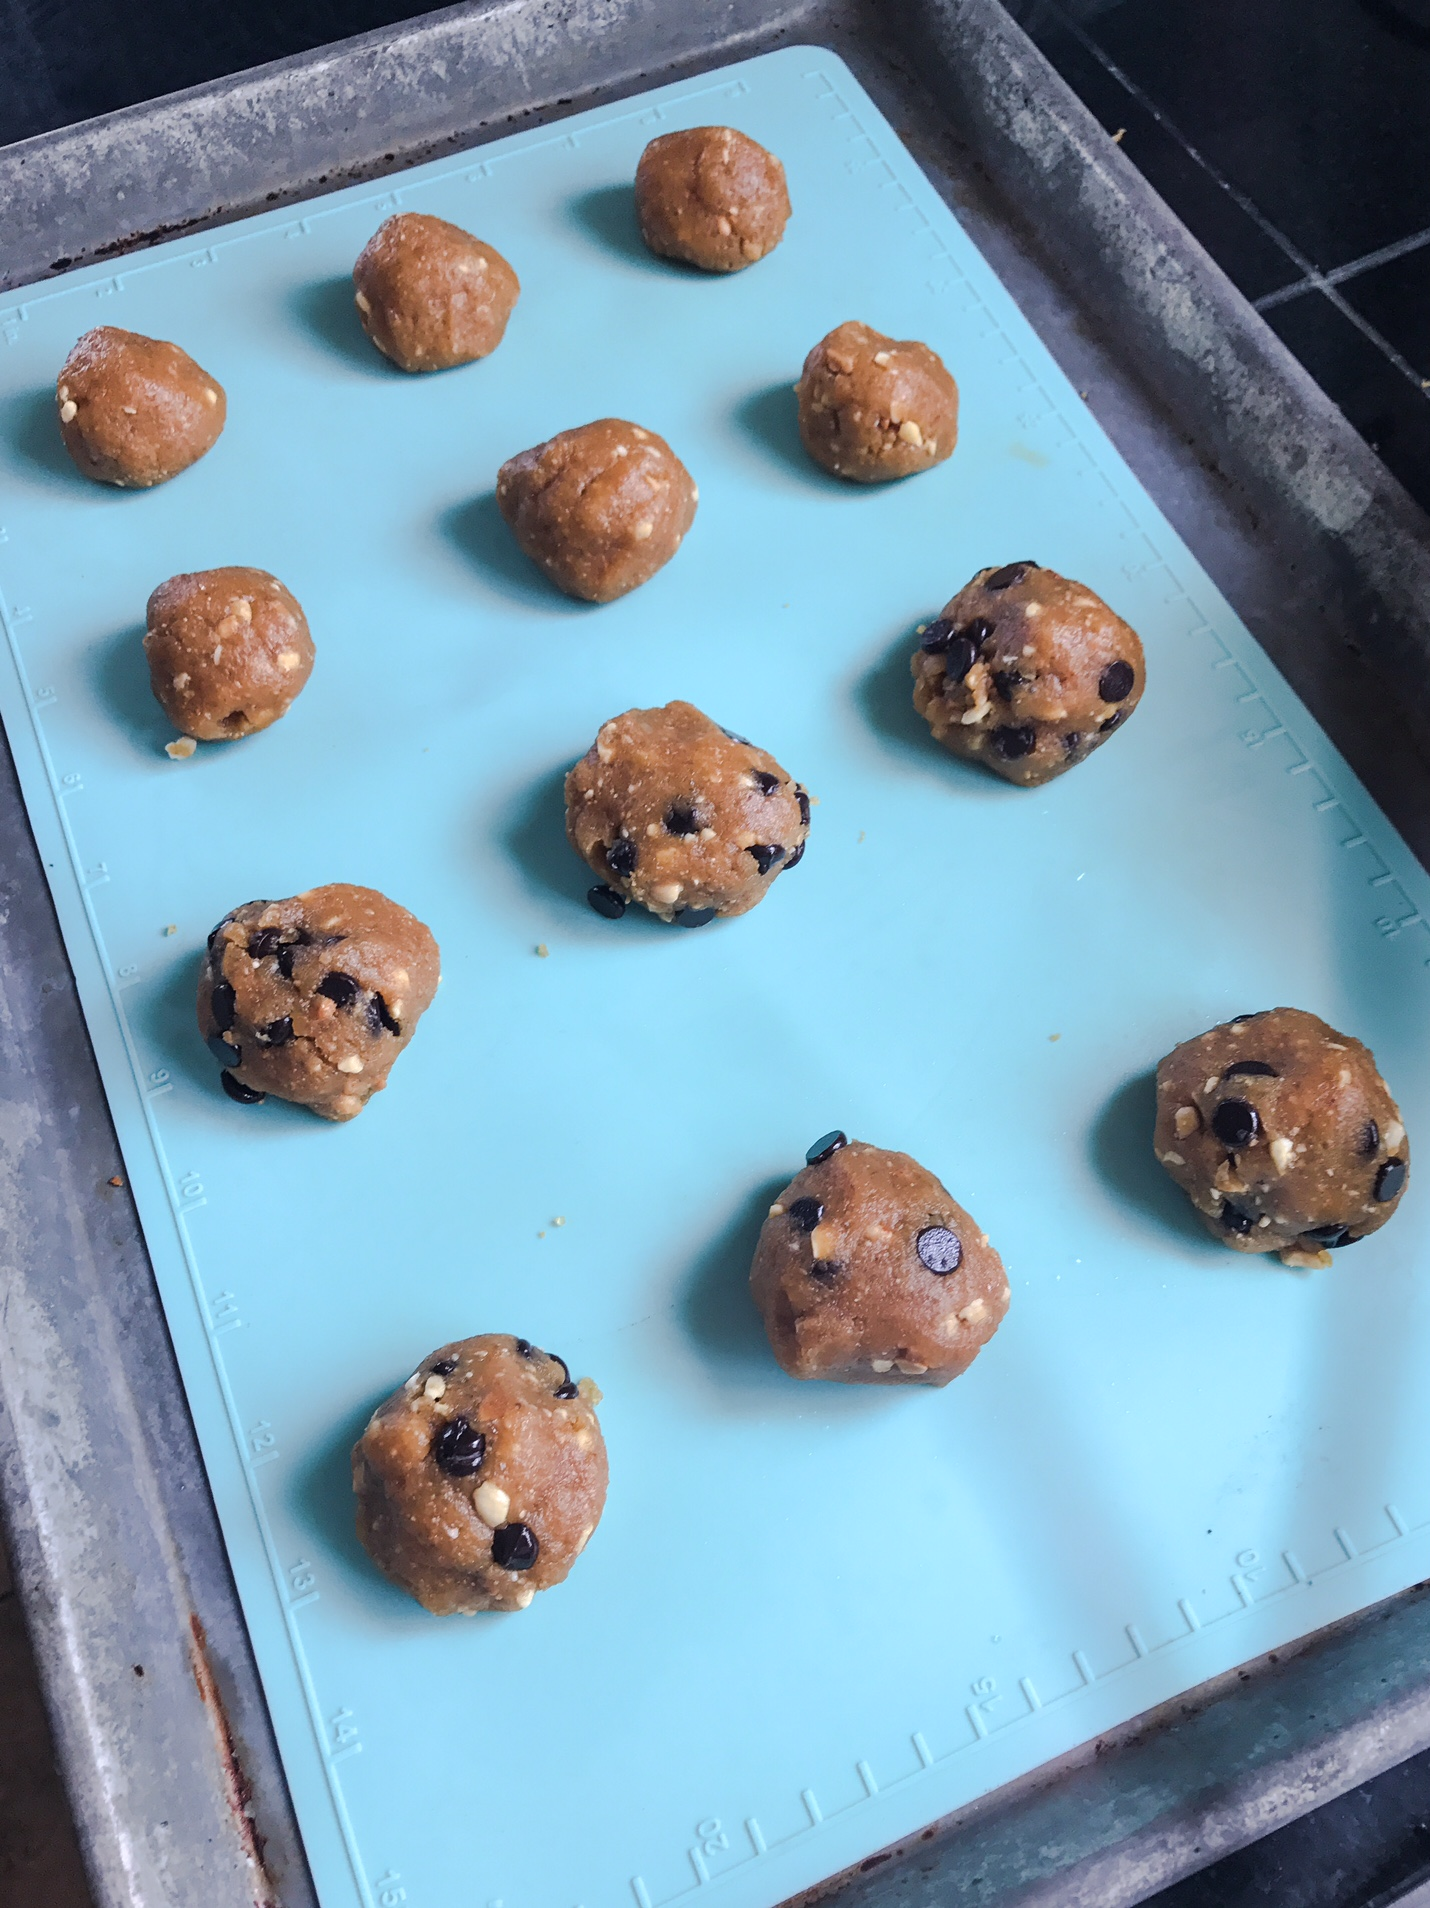 KETO RECIPE: CHOCOLATE CHIP PEANUT BUTTER COOKIES by Jen Fisch via Keto In The City